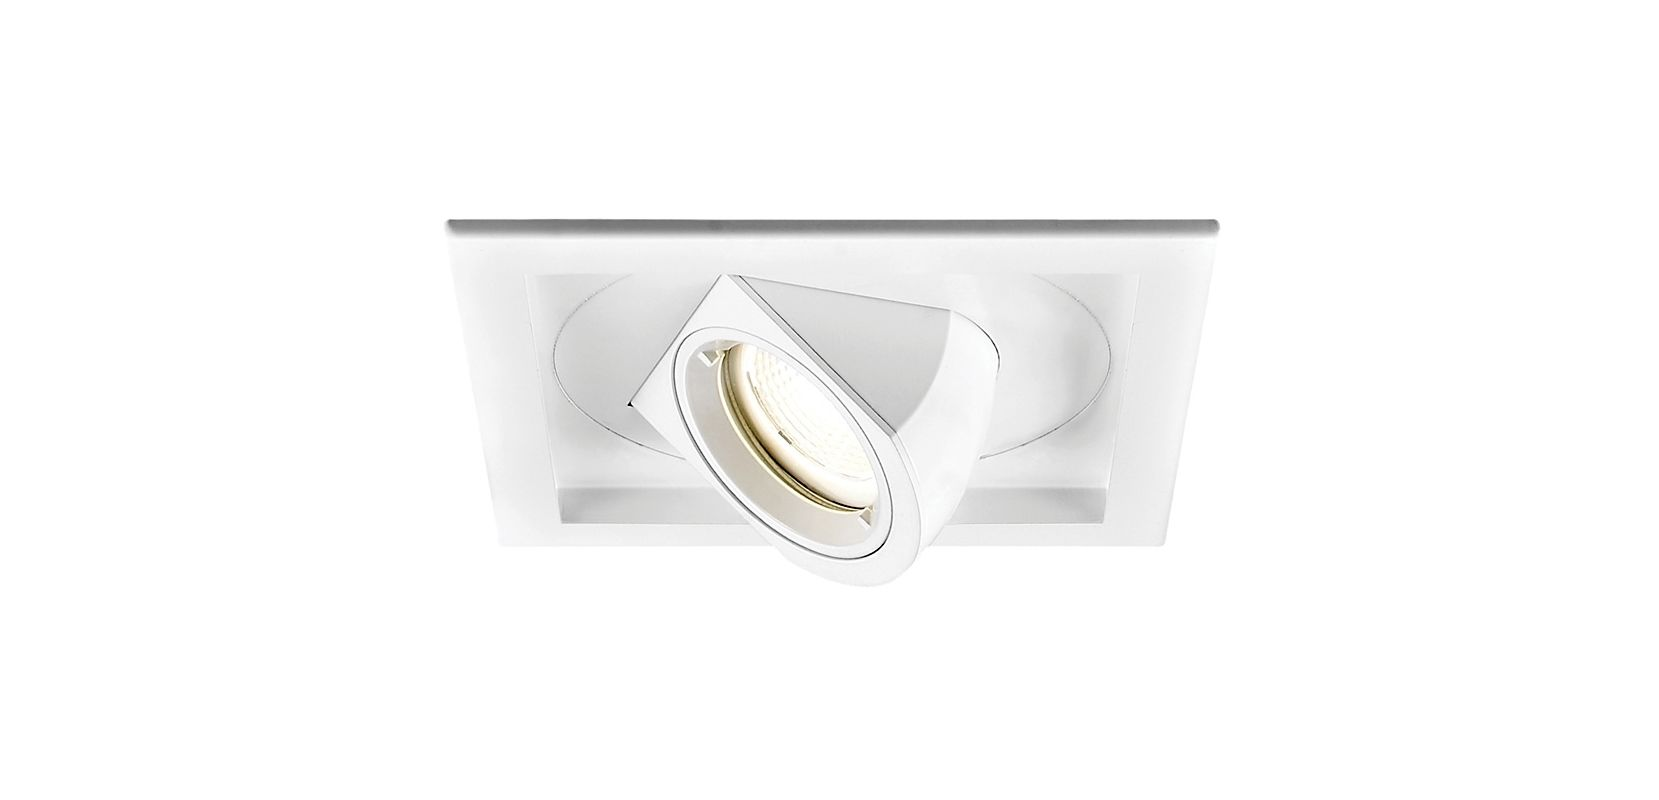 "WAC Lighting MT-5LD125T-F35 6"" 3500K High Output LED Recessed Light"